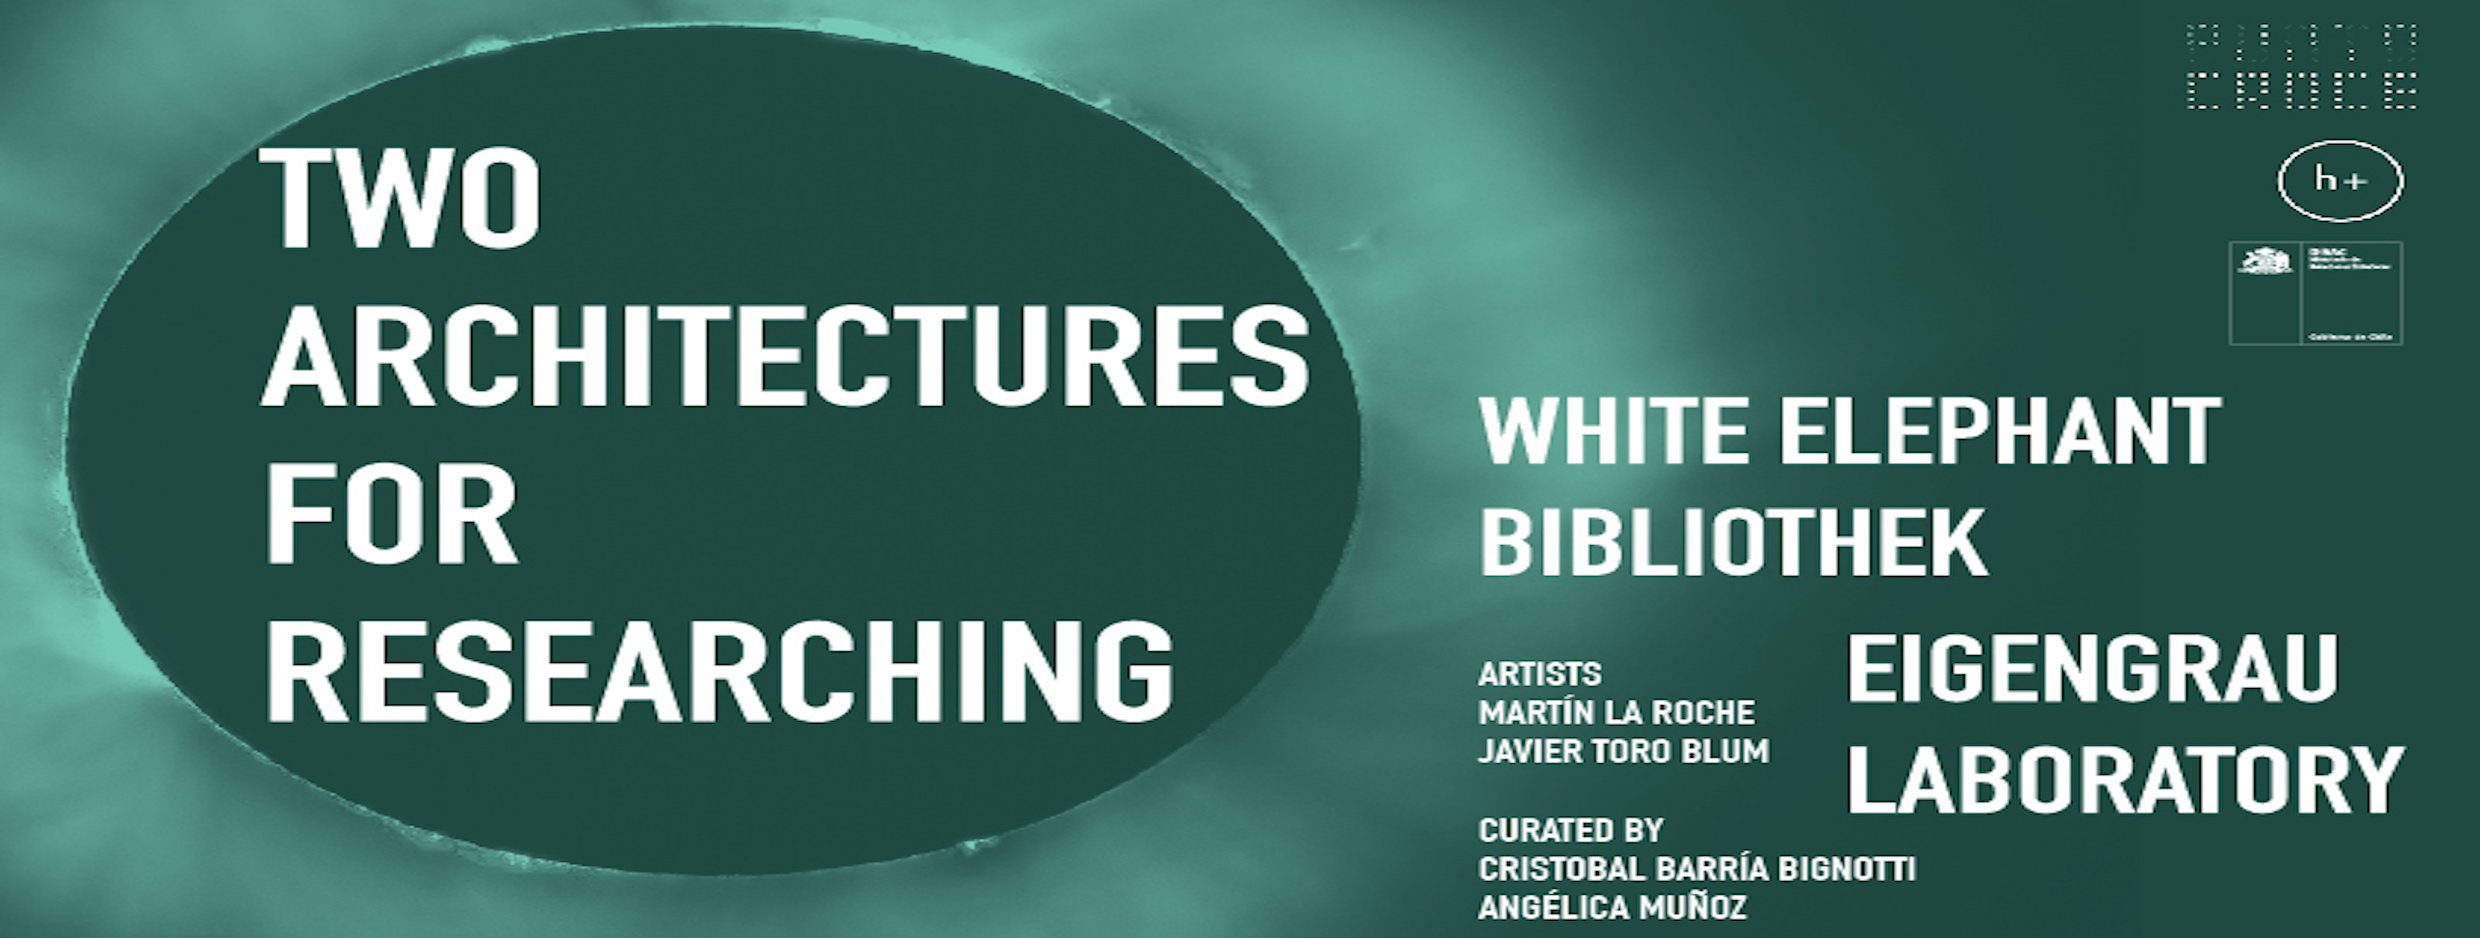 Two Architectures for Researching | 28 maggio - 11 giugno | 19:00